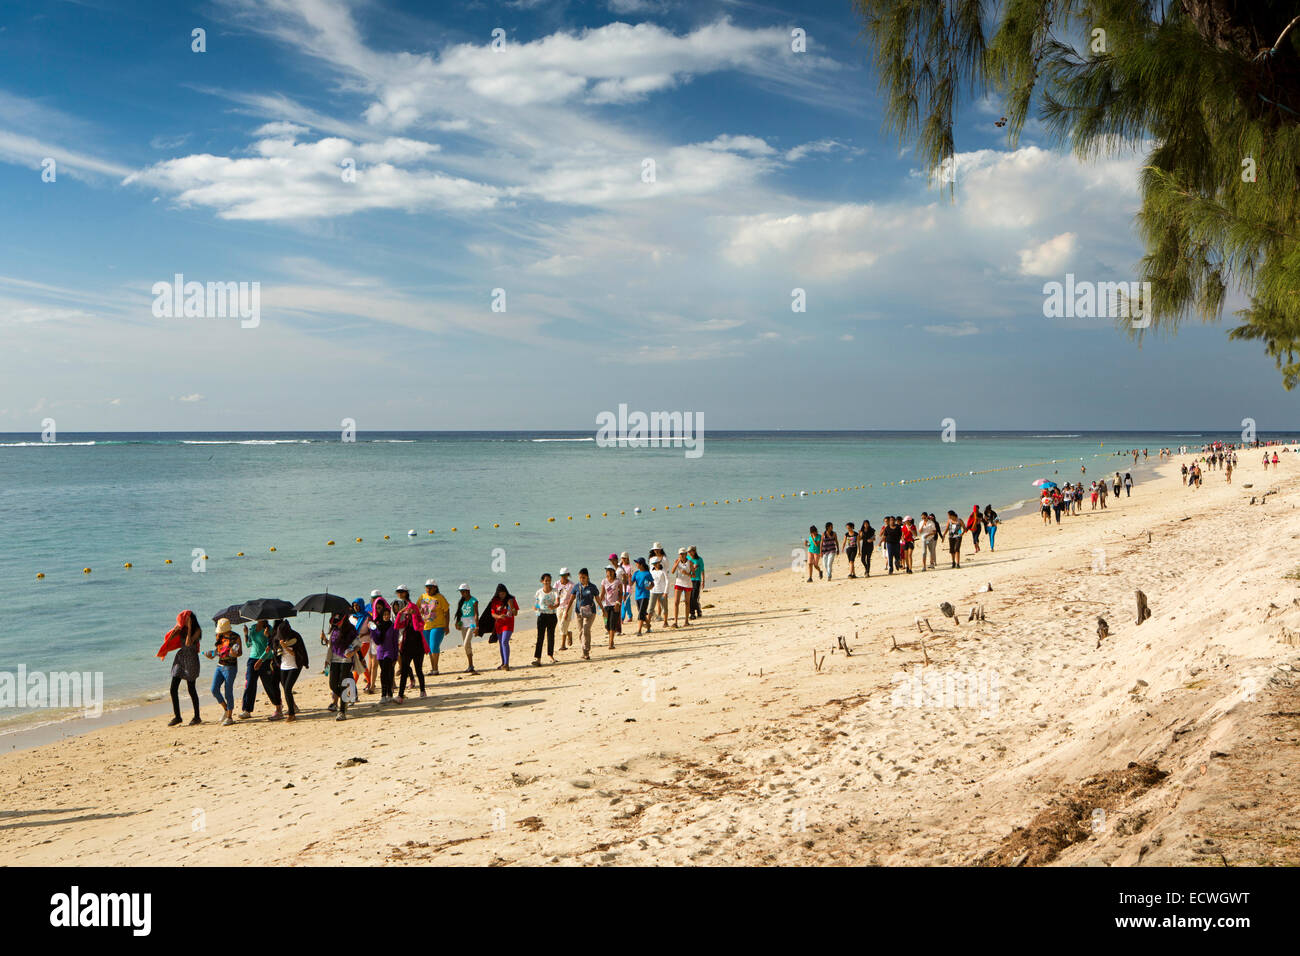 Mauritius, Flic en Flac, Public Beach, crowds of young people walking along beach at weekend - Stock Image